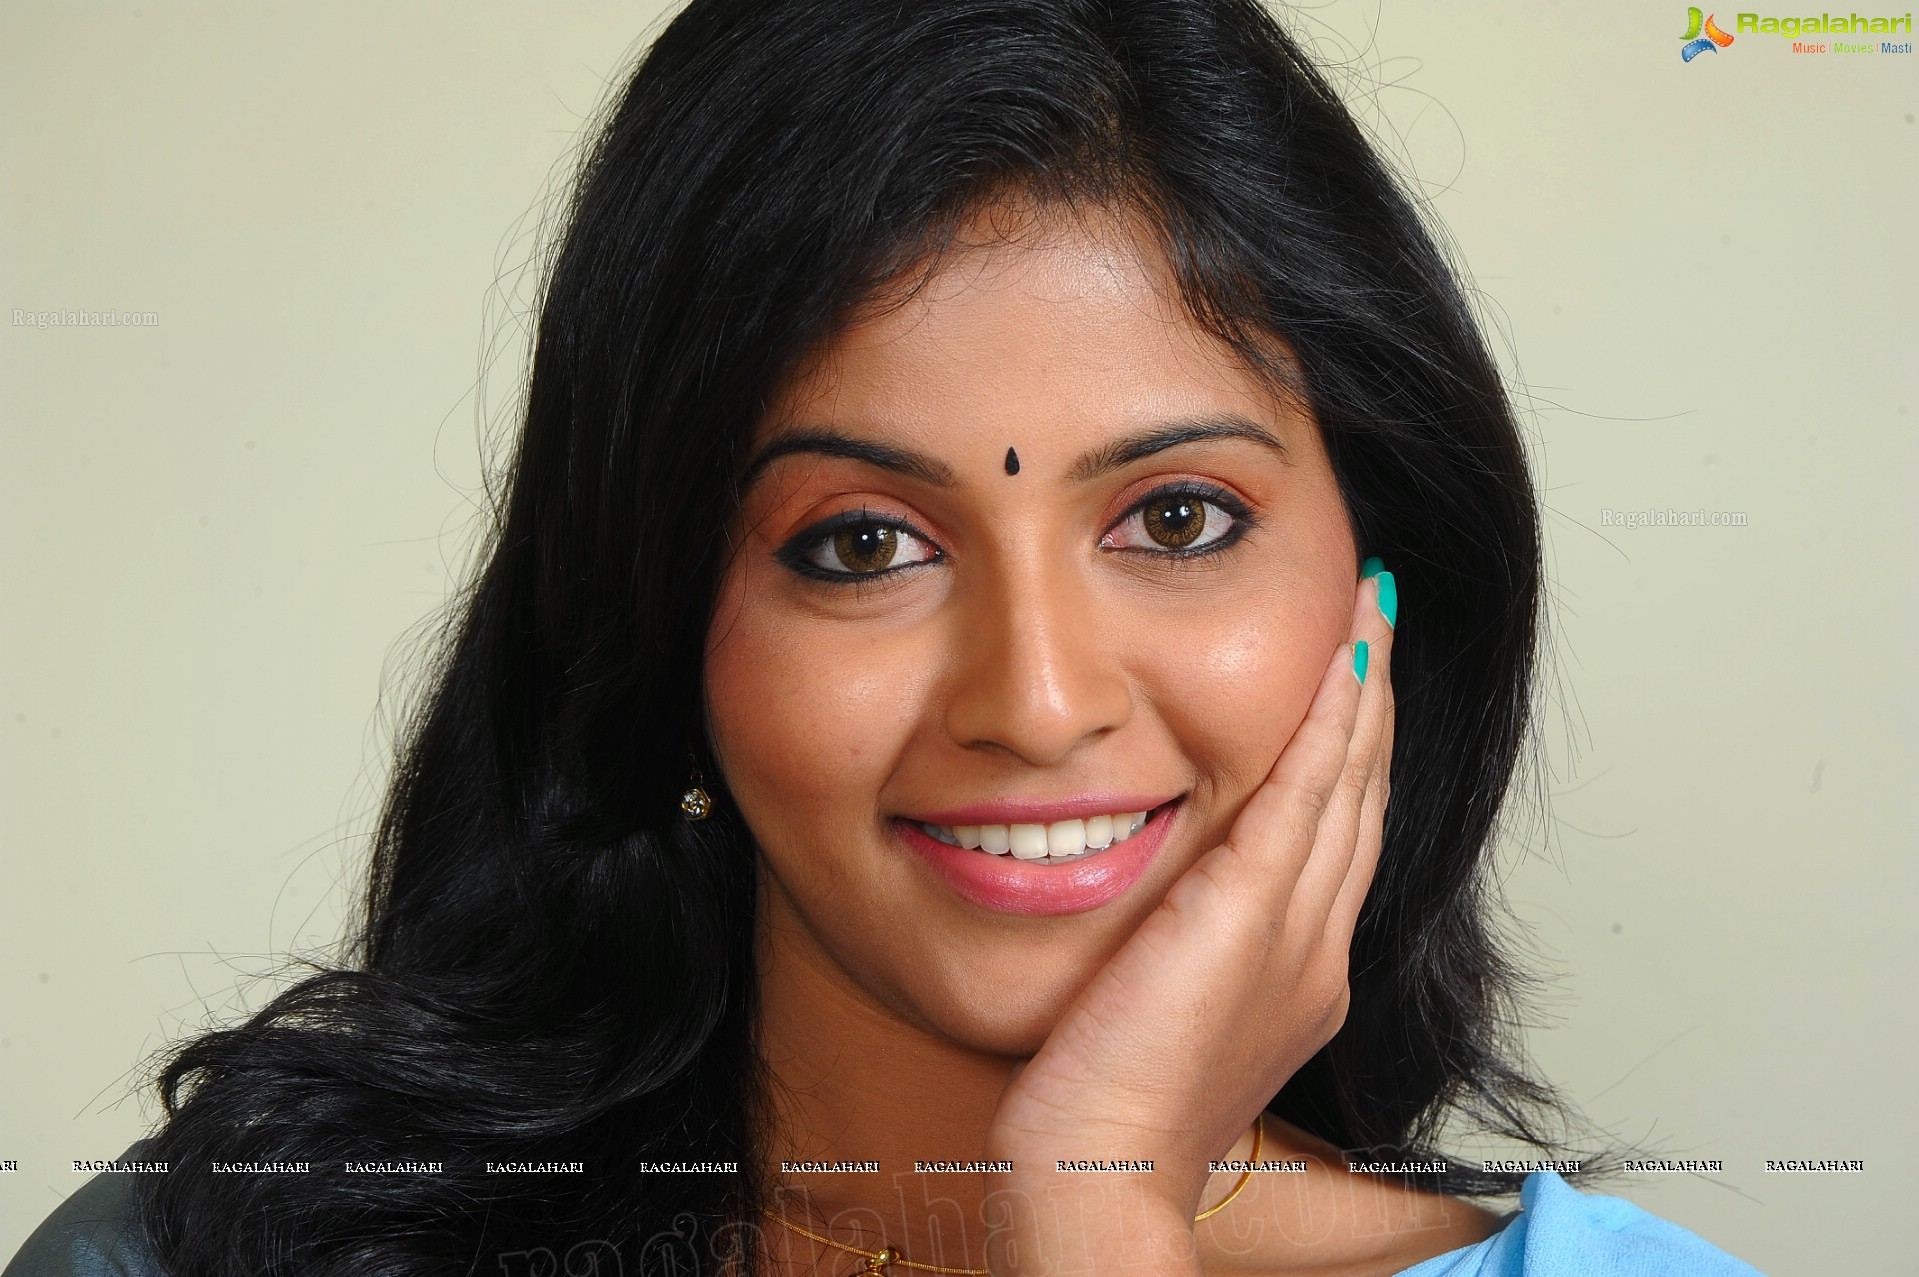 anjali (high definition) image 108 | tollywood actress images,images